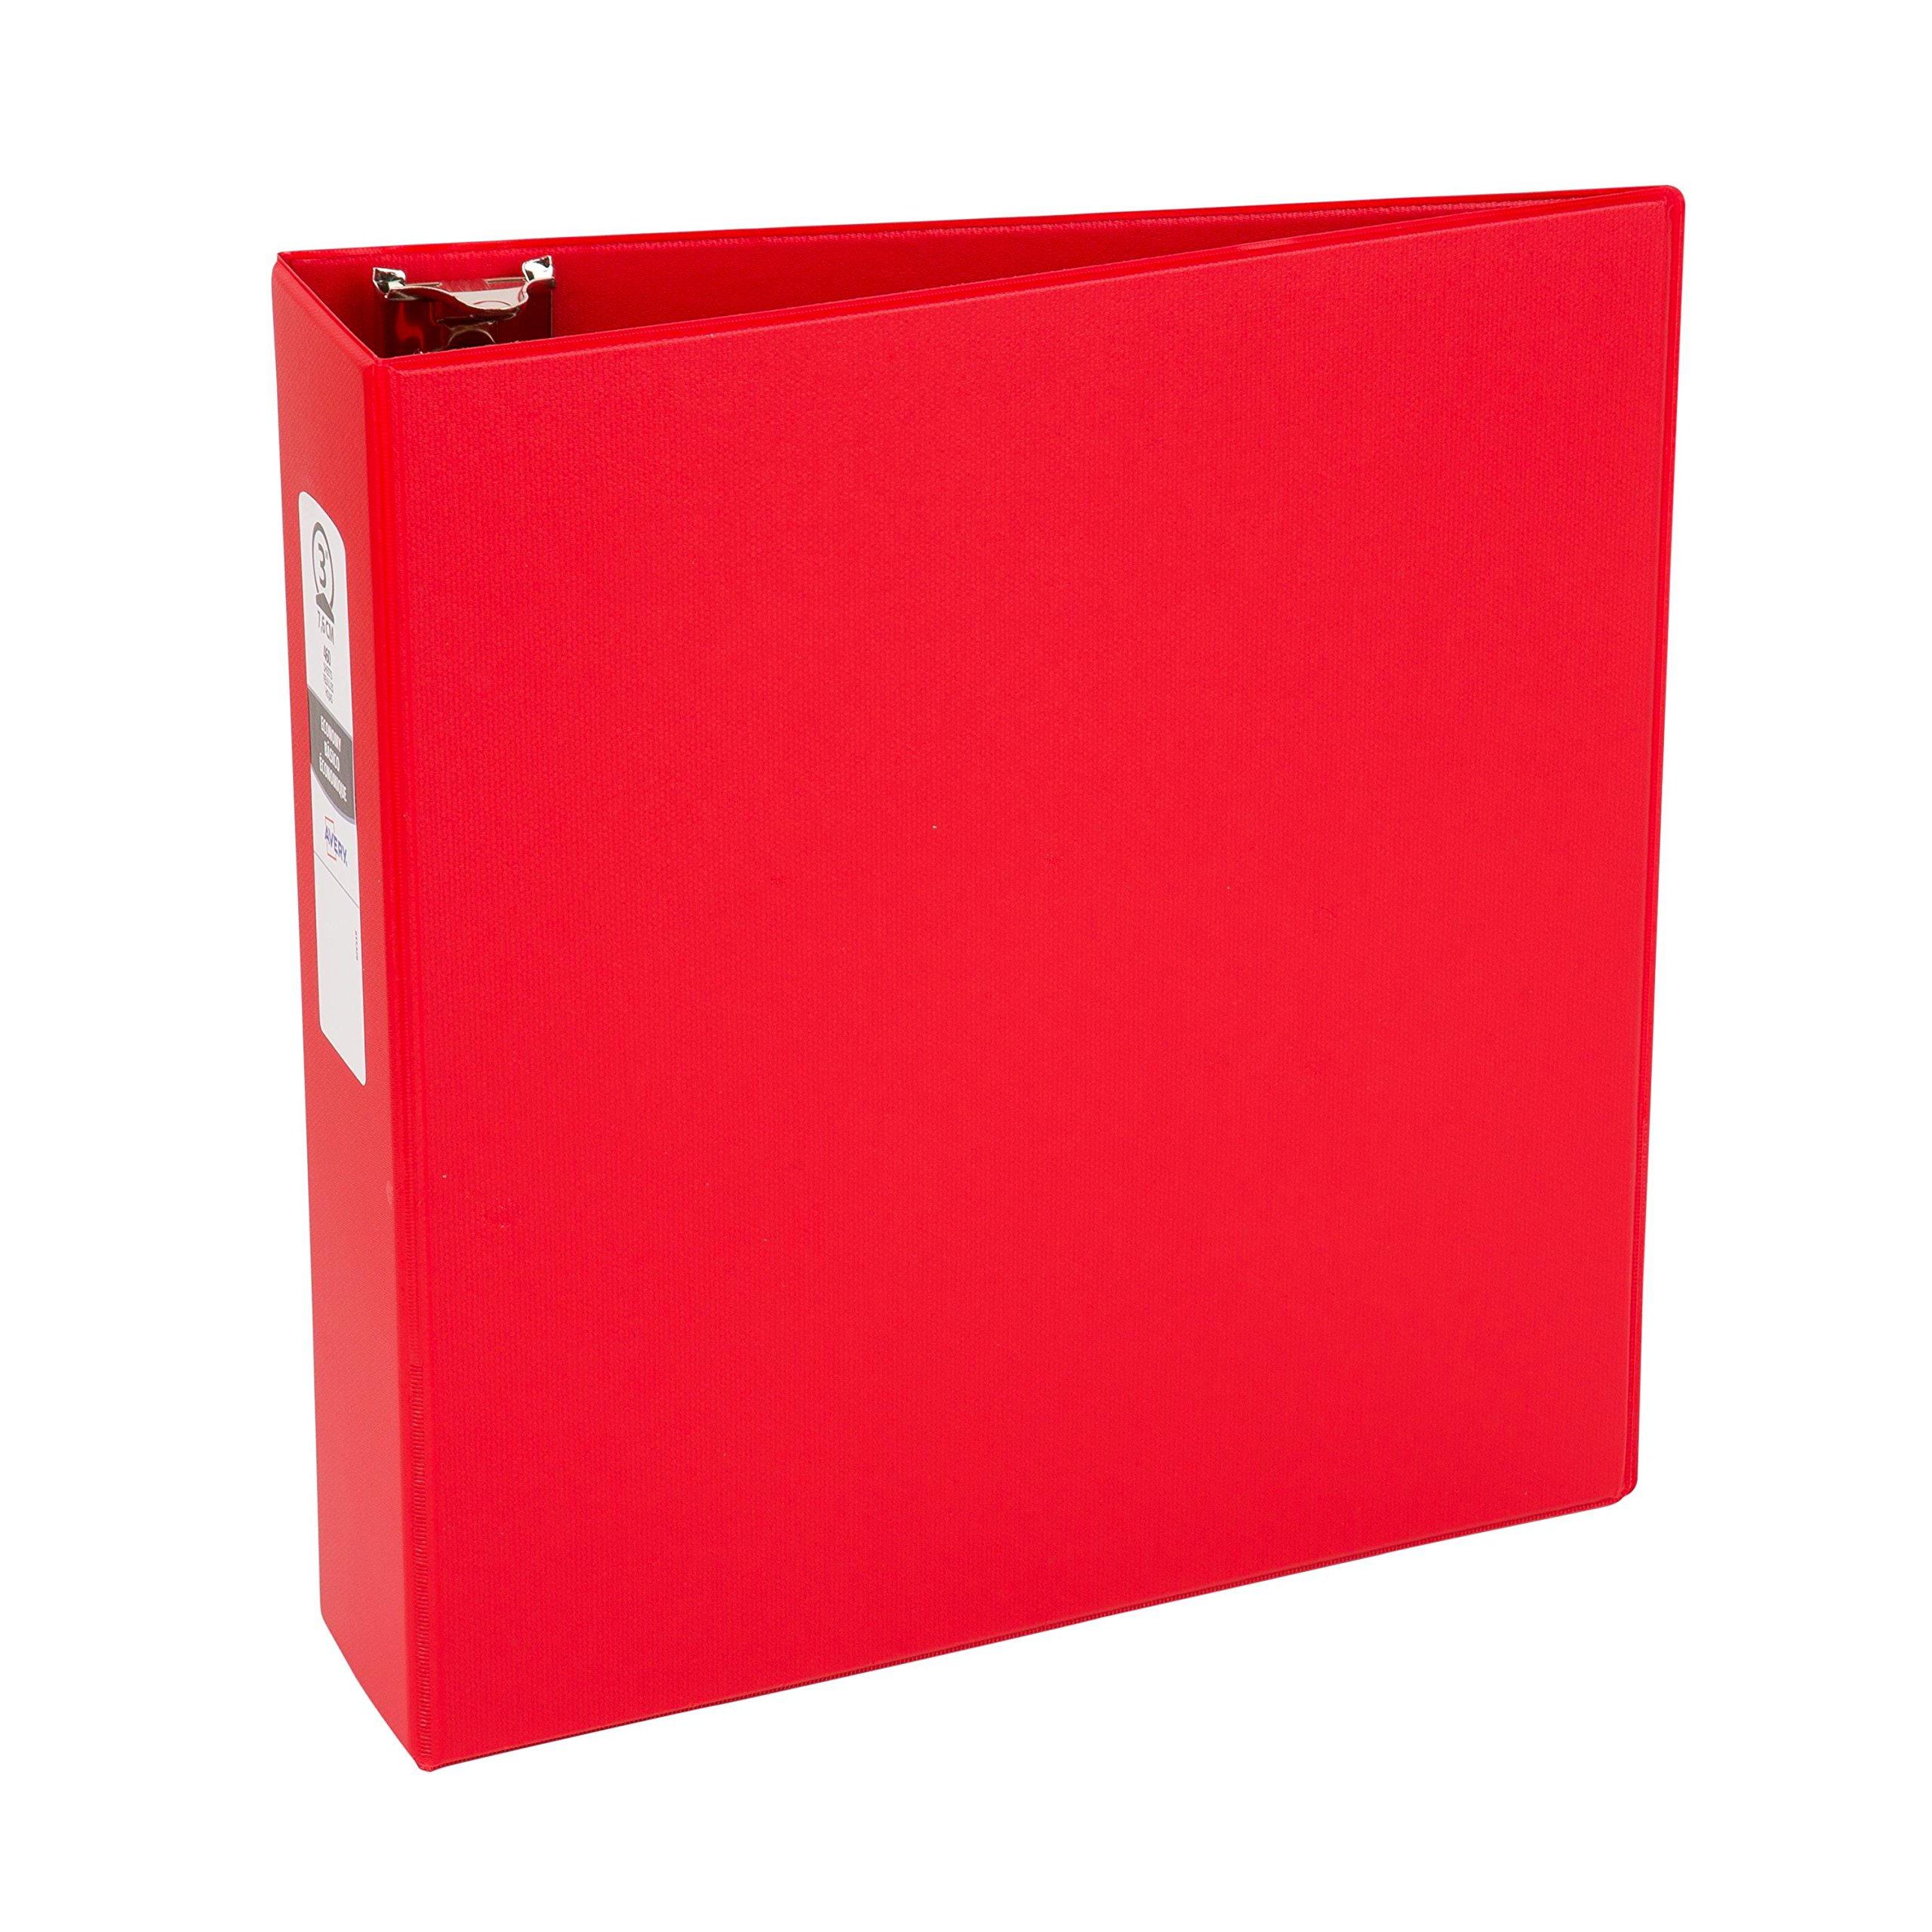 Avery Economy Binder, 3-Inch Round Ring holds up to 460 sheets, 1 Red Binder (3608)